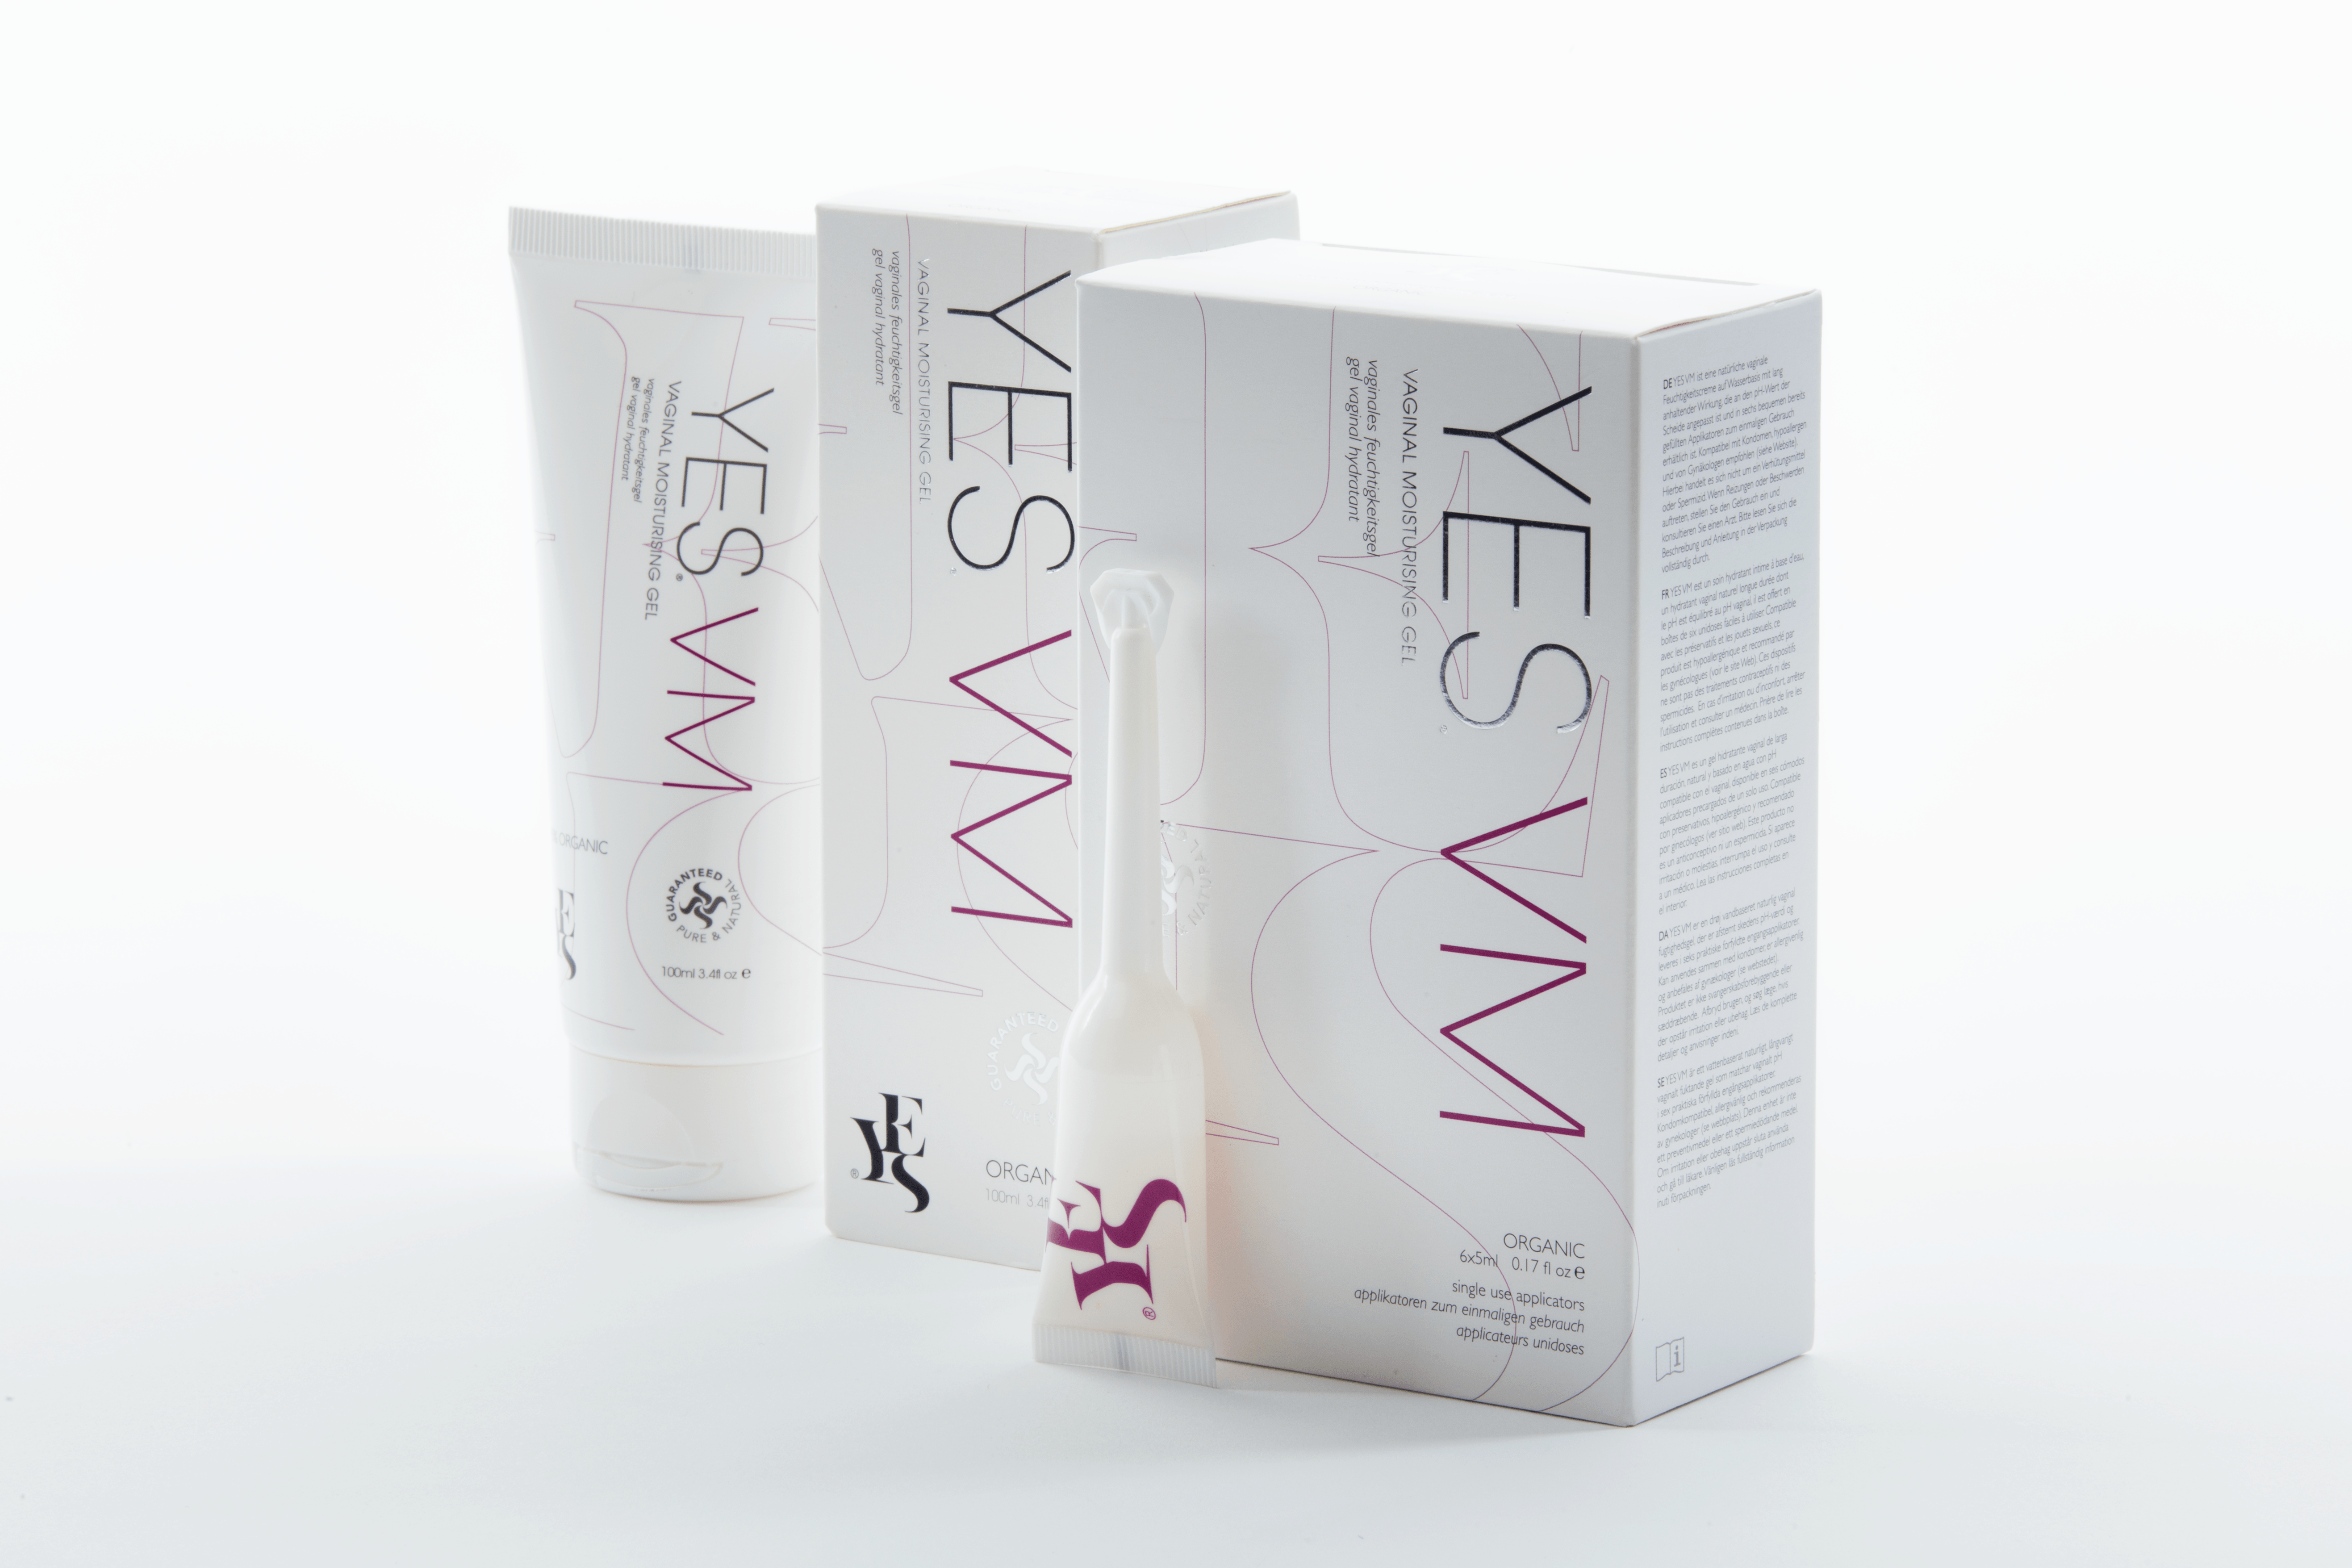 product image of yes vaginal moisturising gel